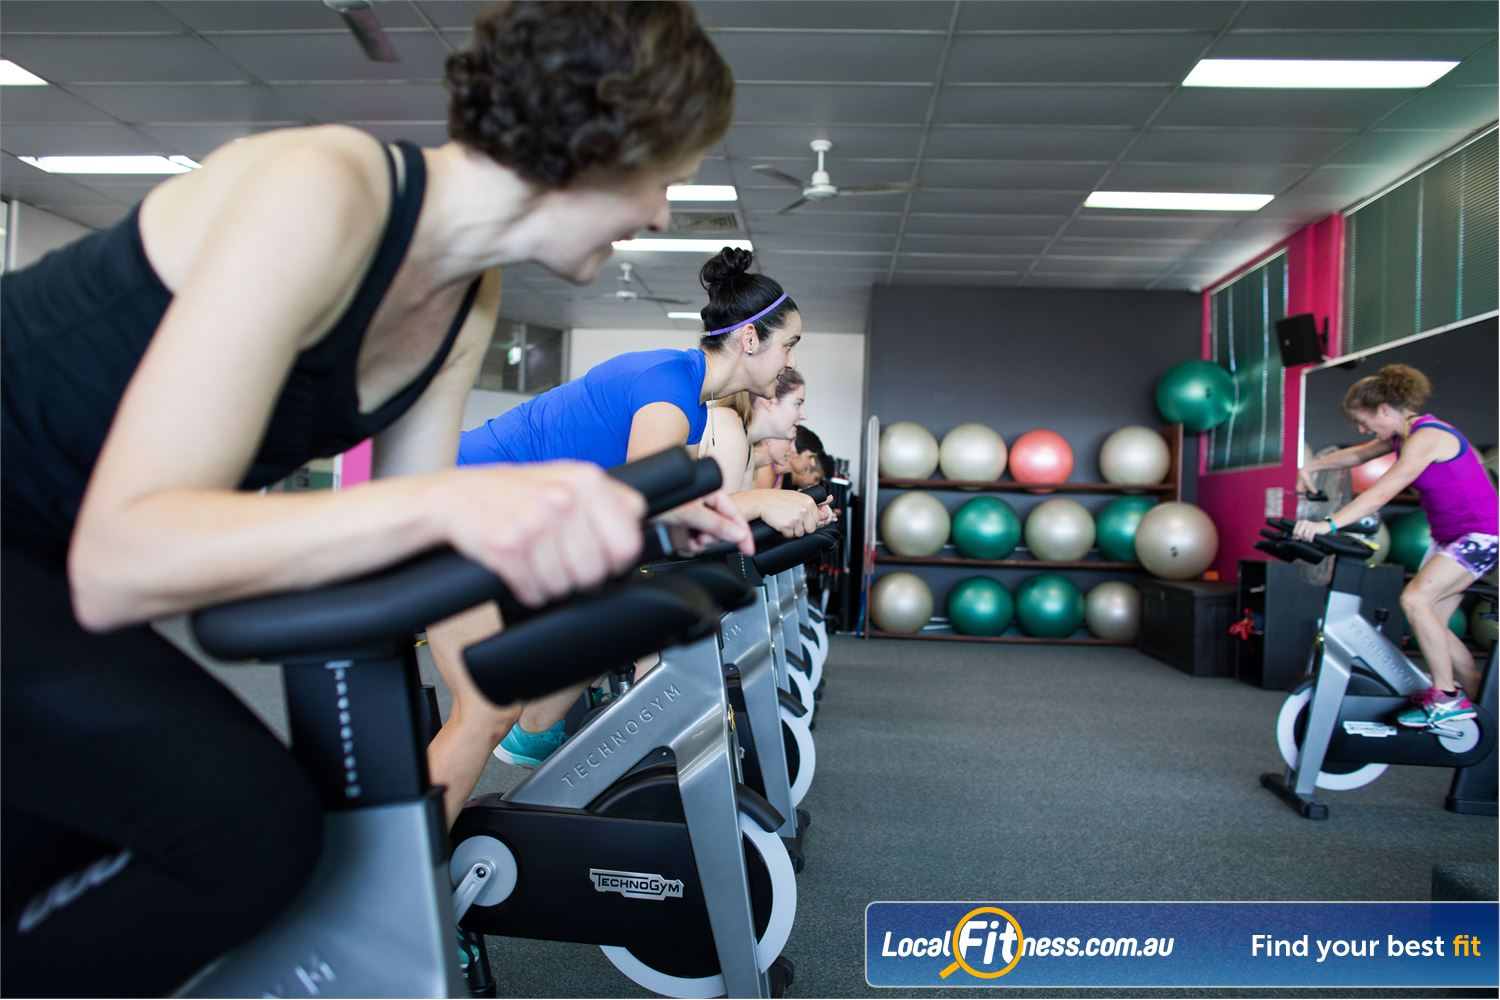 Fernwood Fitness Near Mcdowall Burn calories fast with our Everton Park spin cycle classes.